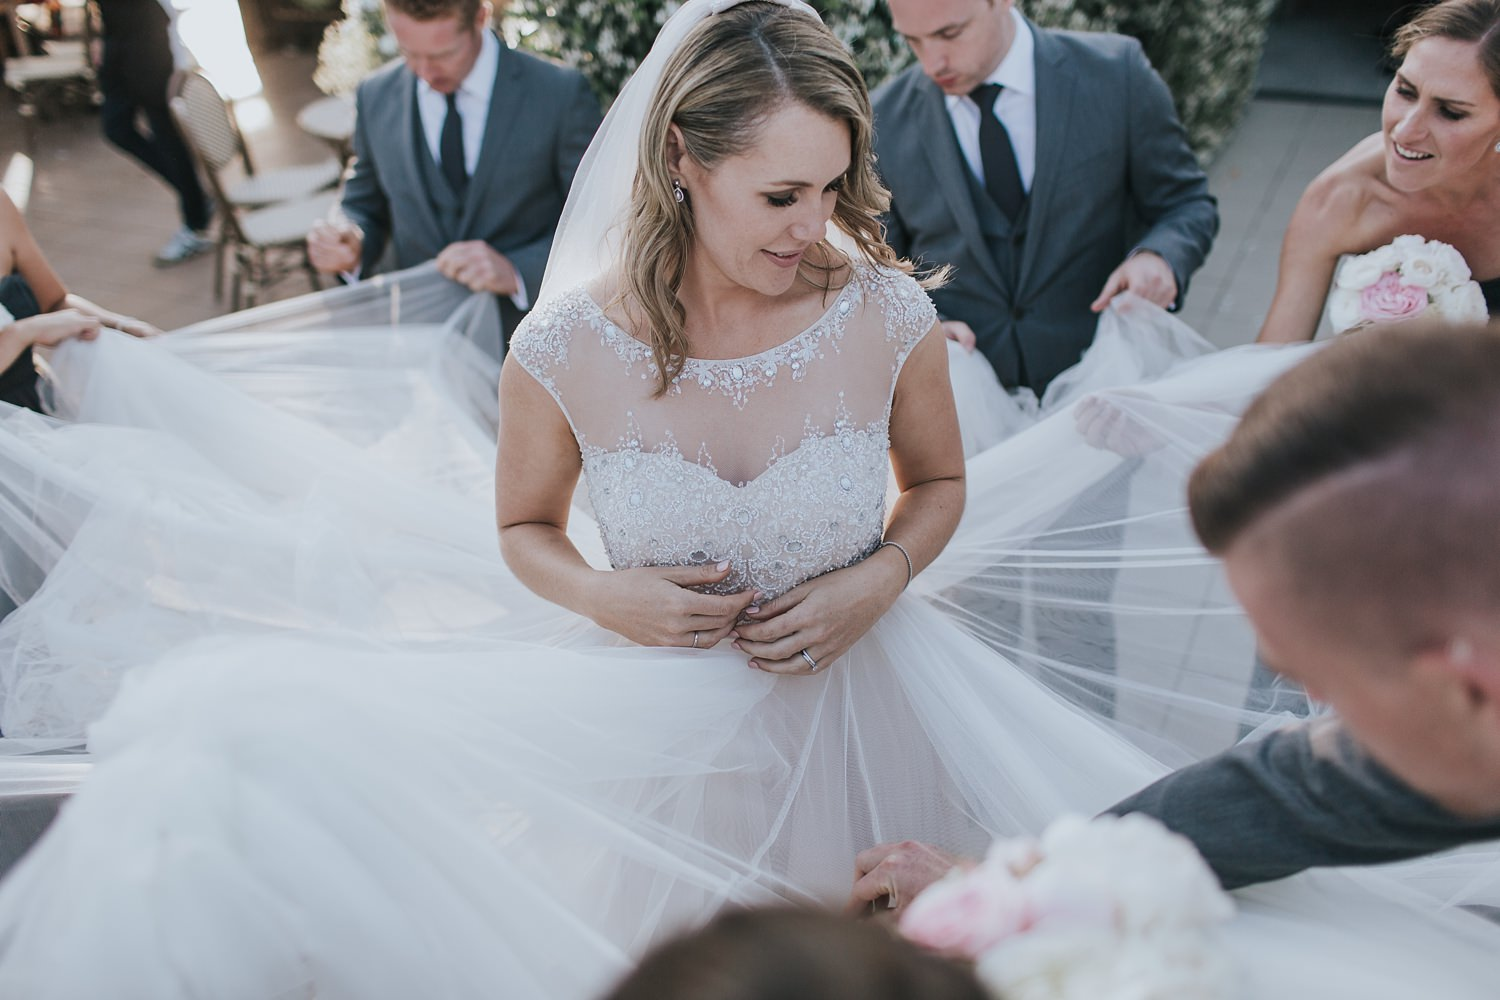 help from the bridal party to clean her dress